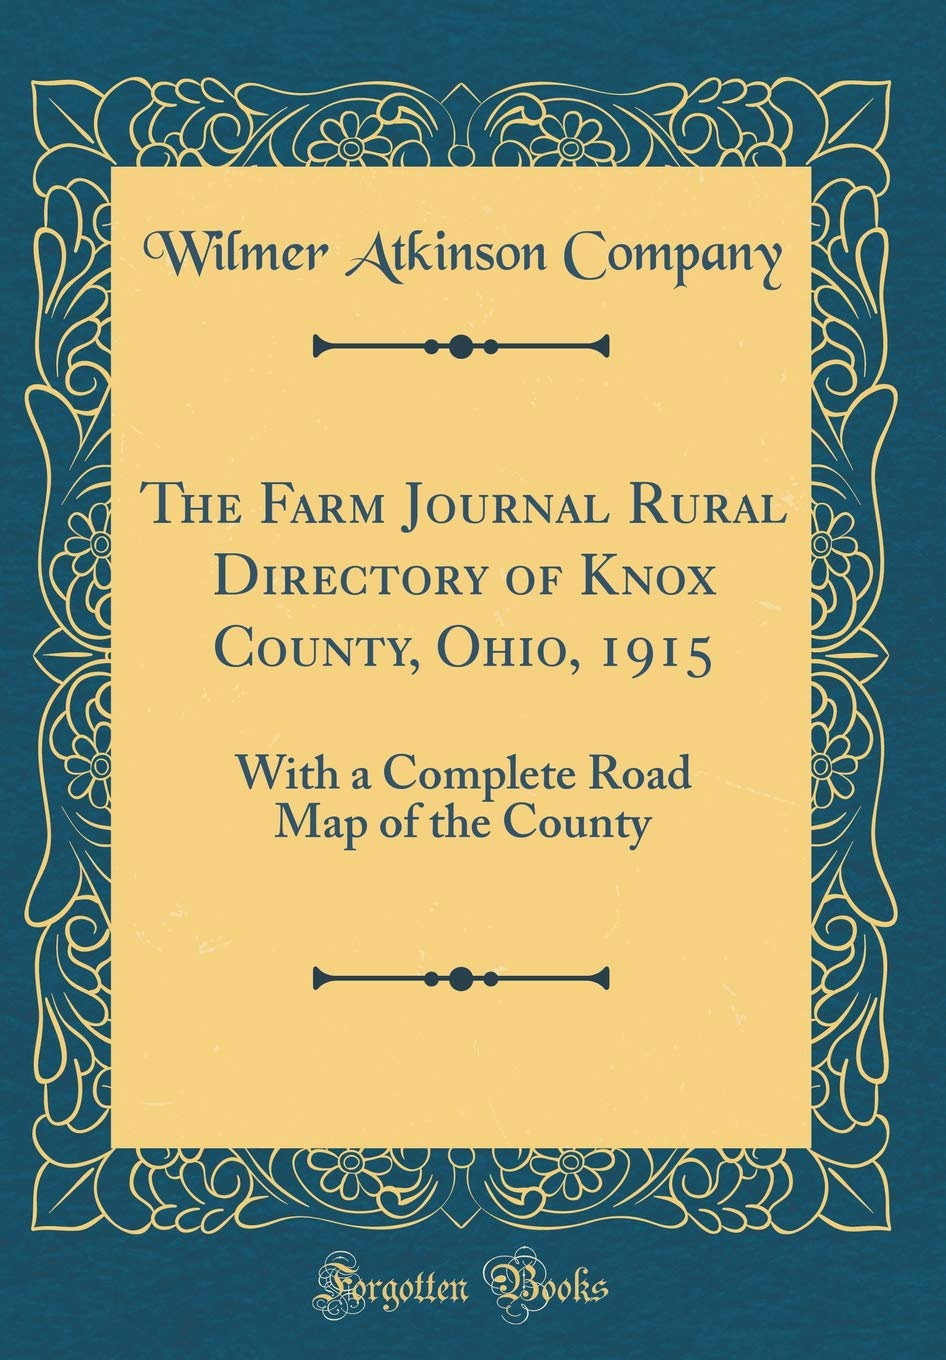 The Farm Journal Rural Directory of Knox County, Ohio, 1915: With a Knox County Road Map on clarion county road map, deuel county road map, alpena county road map, ozark county road map, dawson county road map, hood county road map, vermilion county road map, mcdonald county road map, aroostook county road map, meade county road map, dickson county road map, woodford county road map, covington county road map, rutherford county road map, dallam county road map, wyandot county road map, webster county road map, christian county road map, montour county road map, clearfield county road map,